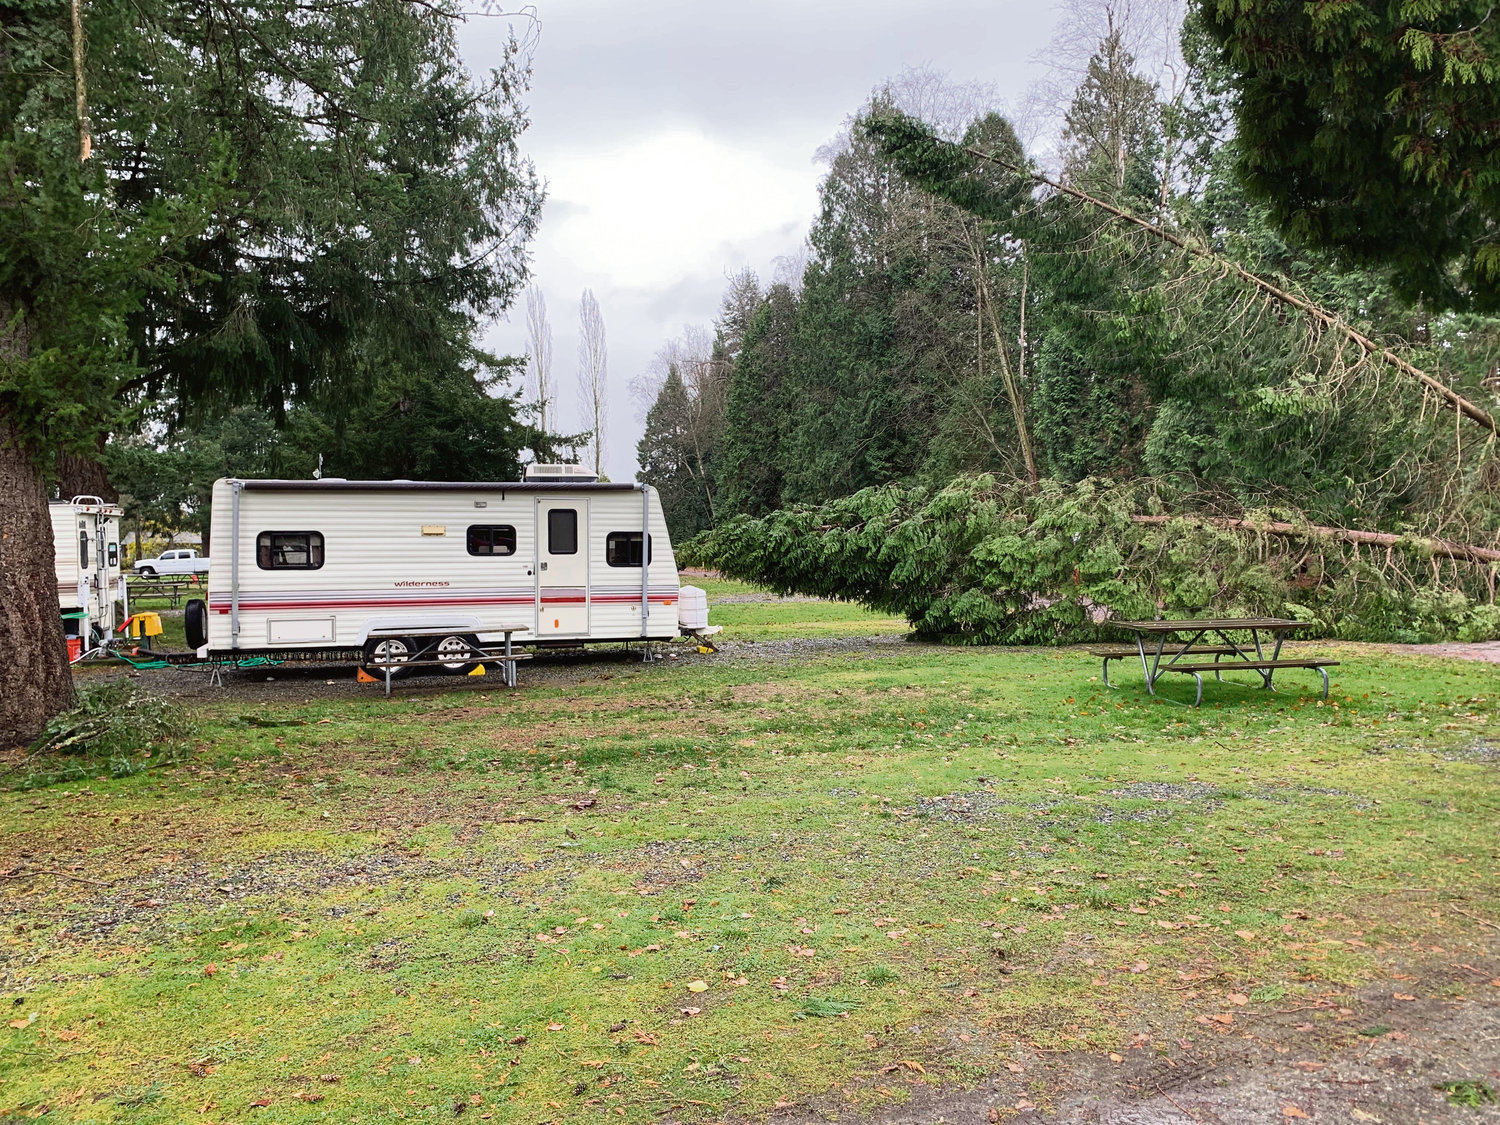 The wind storm on November 17 knocked over numerous trees at Thousand Trails Birch Bay RV campground.